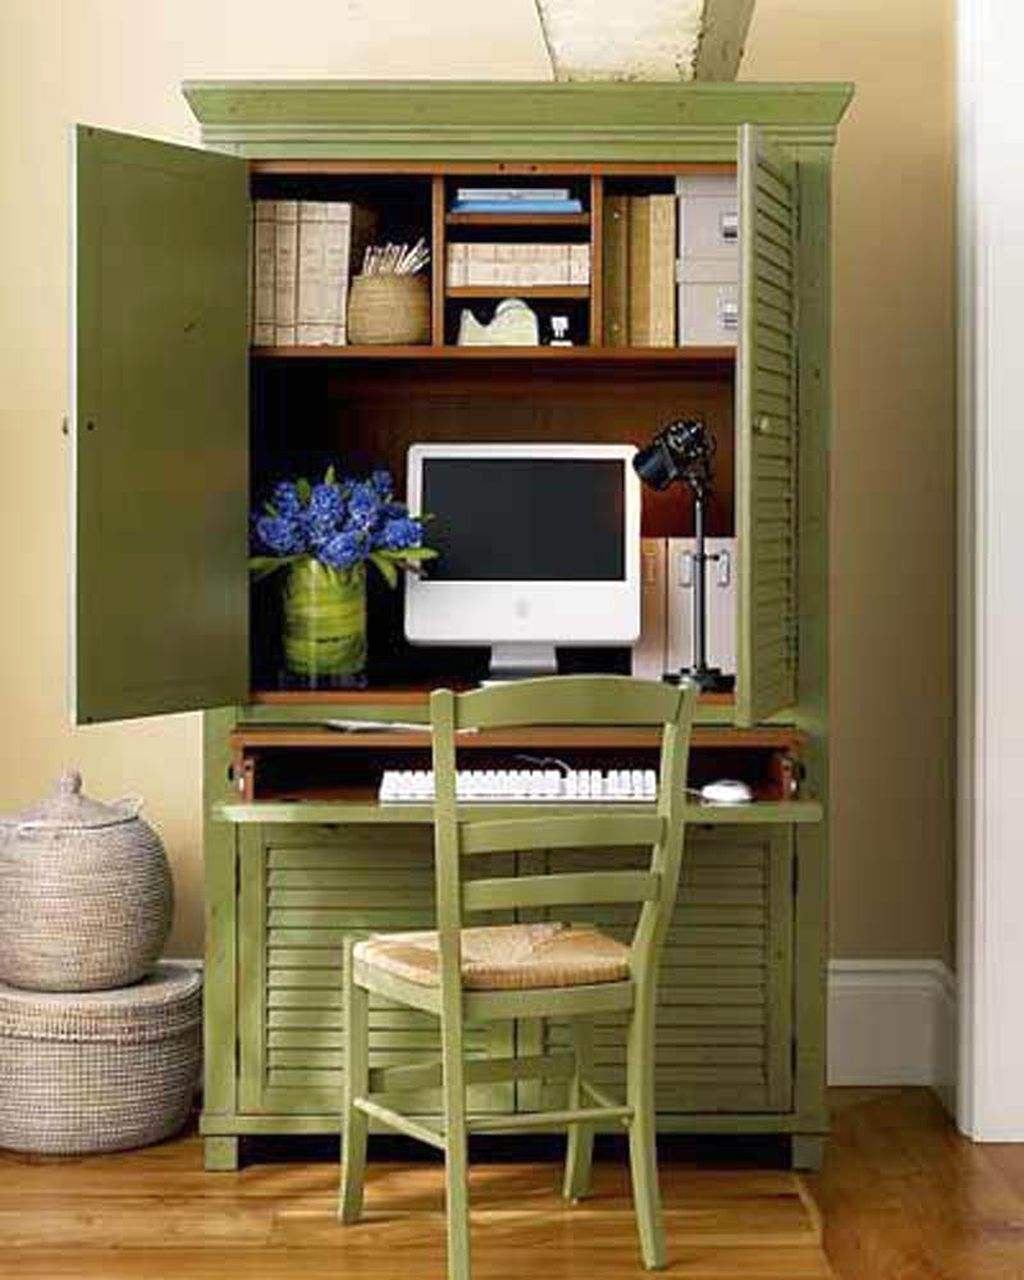 Green cupboard home office design ideas for small spaces for Home decor ideas for small spaces